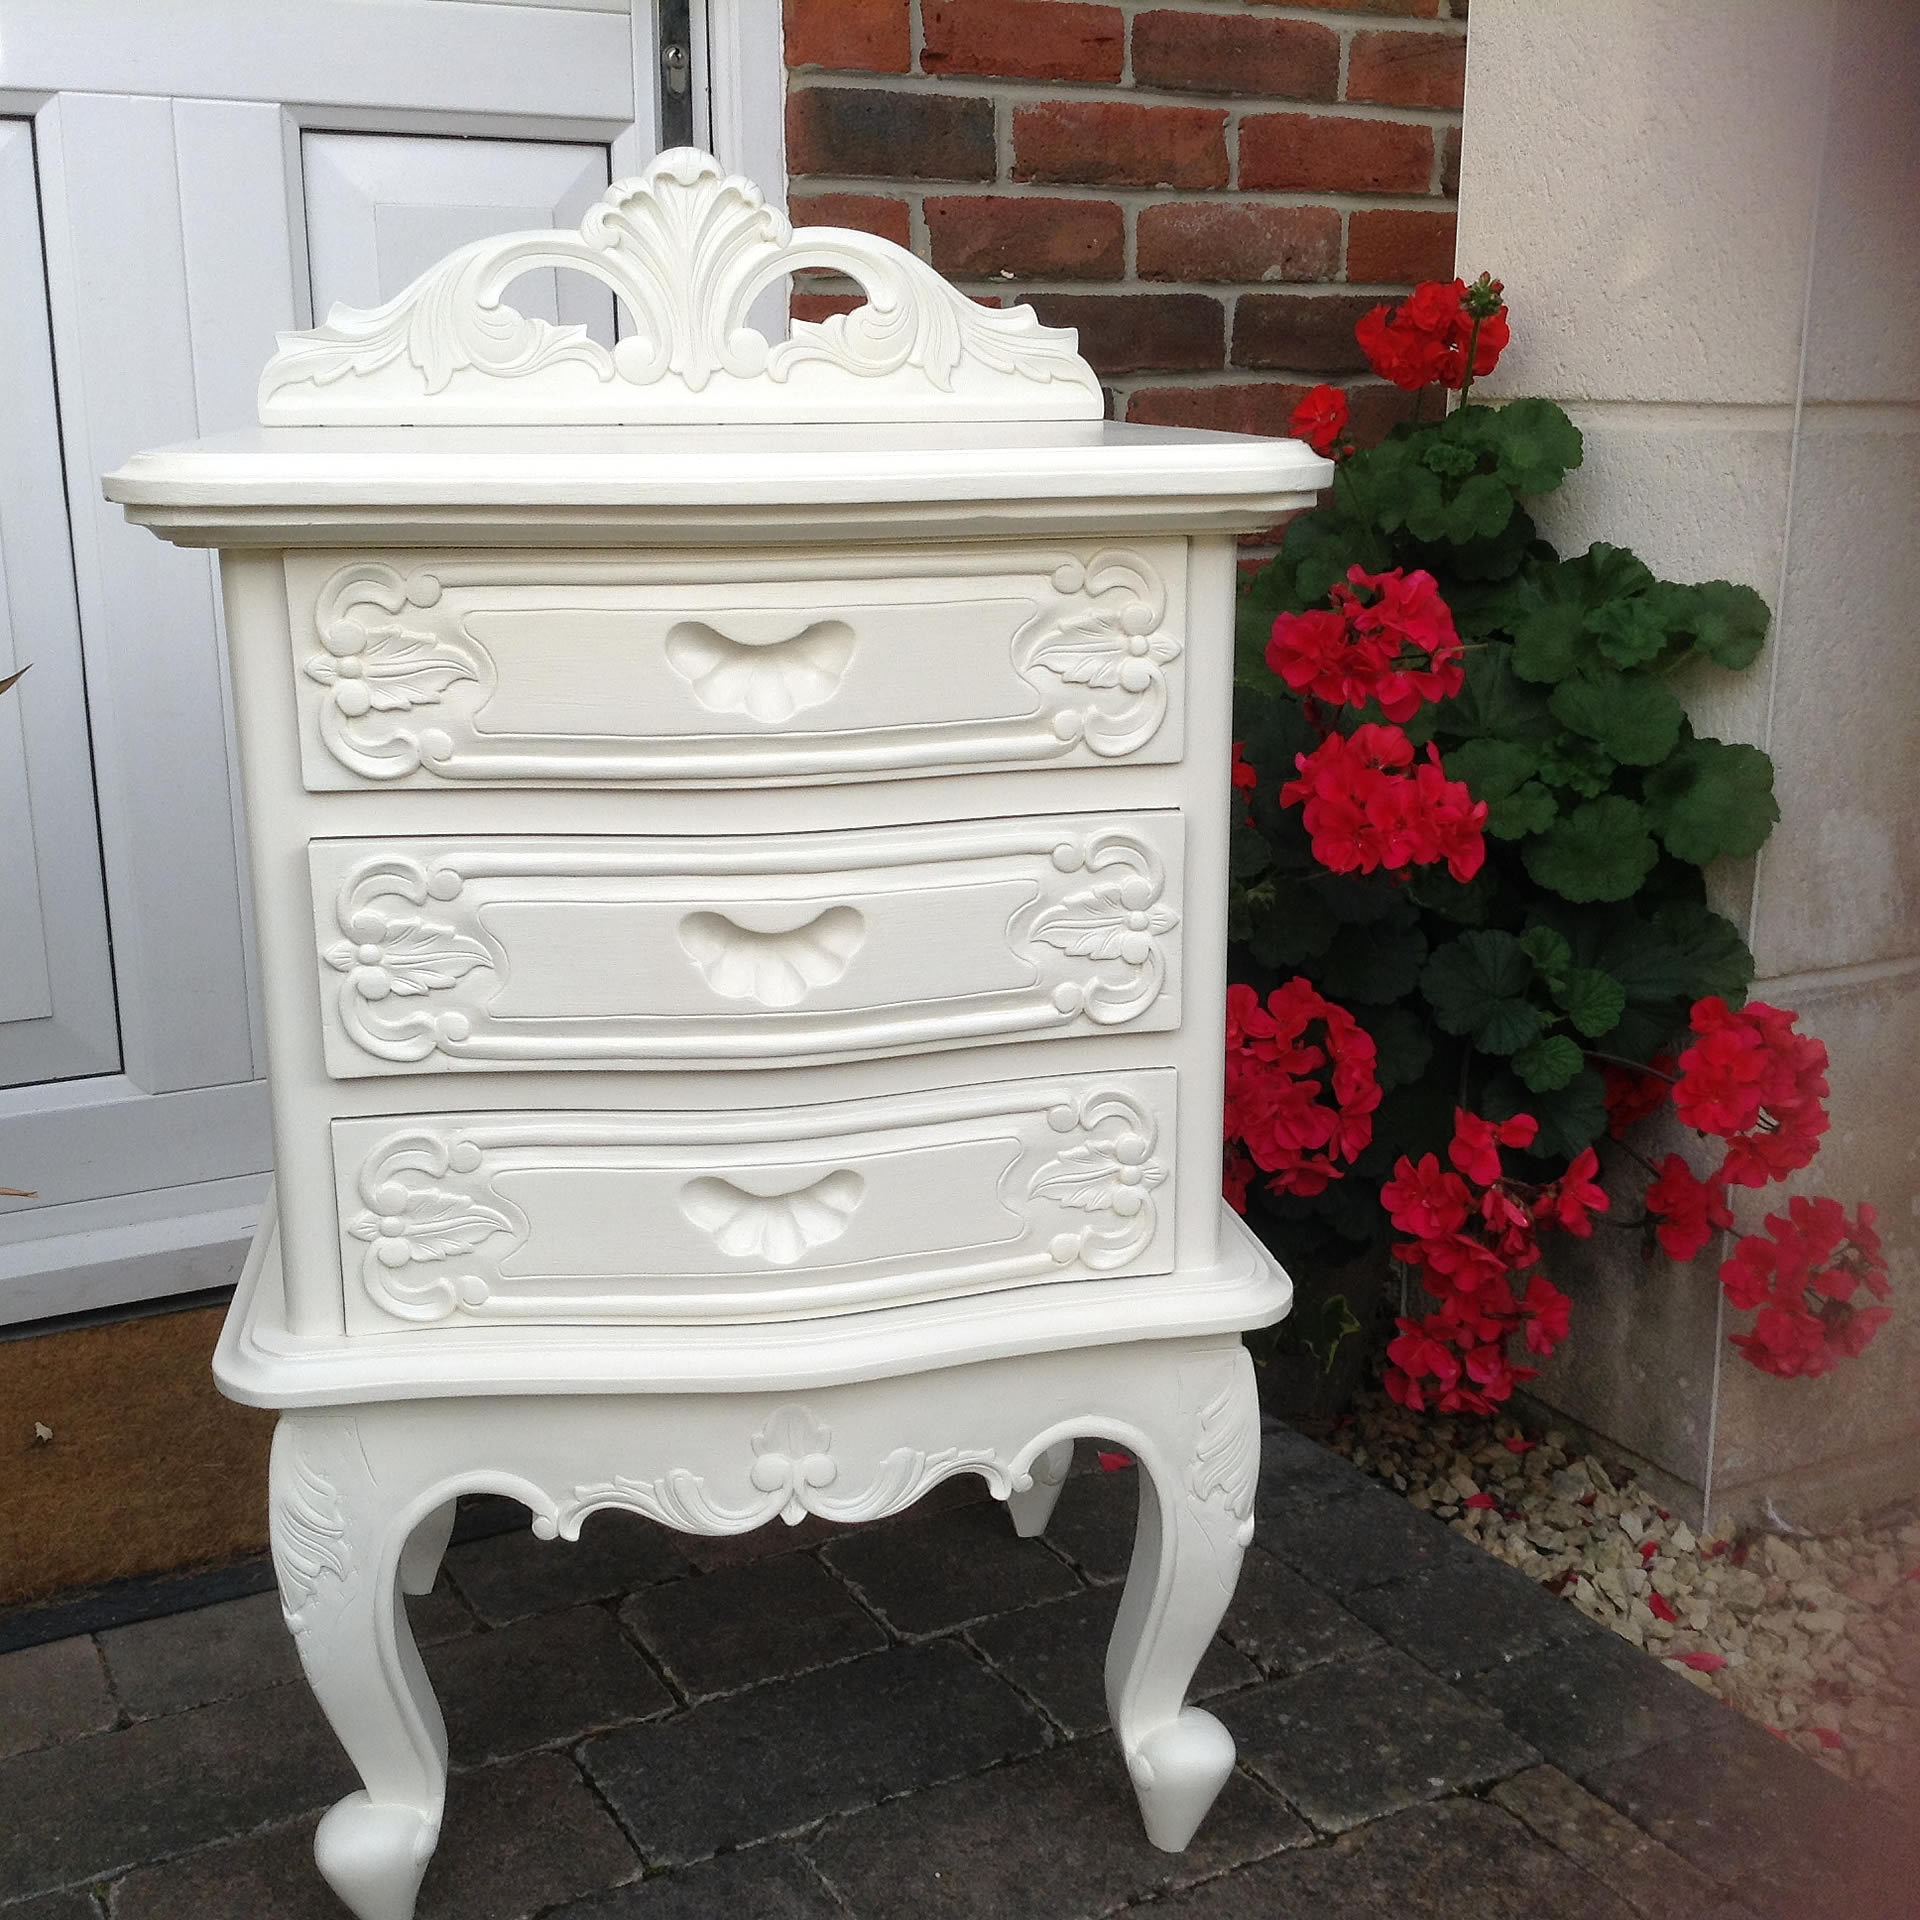 Shabby Chic Furniture: Pinki Red Shabby Chic Furniture Commissions